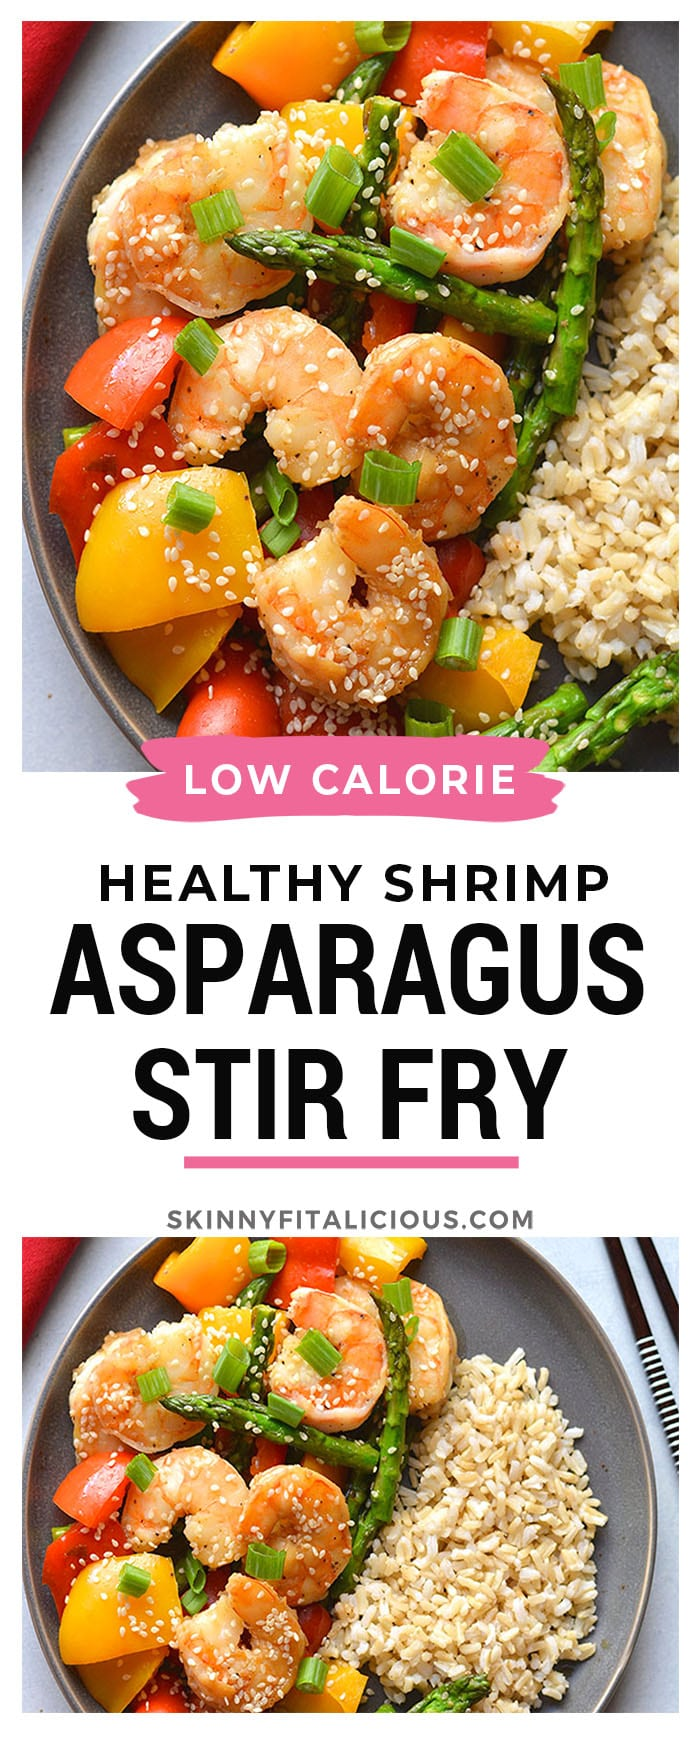 Healthy Shrimp Asparagus Stir Fry is a low calorie dinner recipe that's healthy, flavorful and easy to make. Made in under 30 minutes and gluten free! Low Calorie + Gluten Free